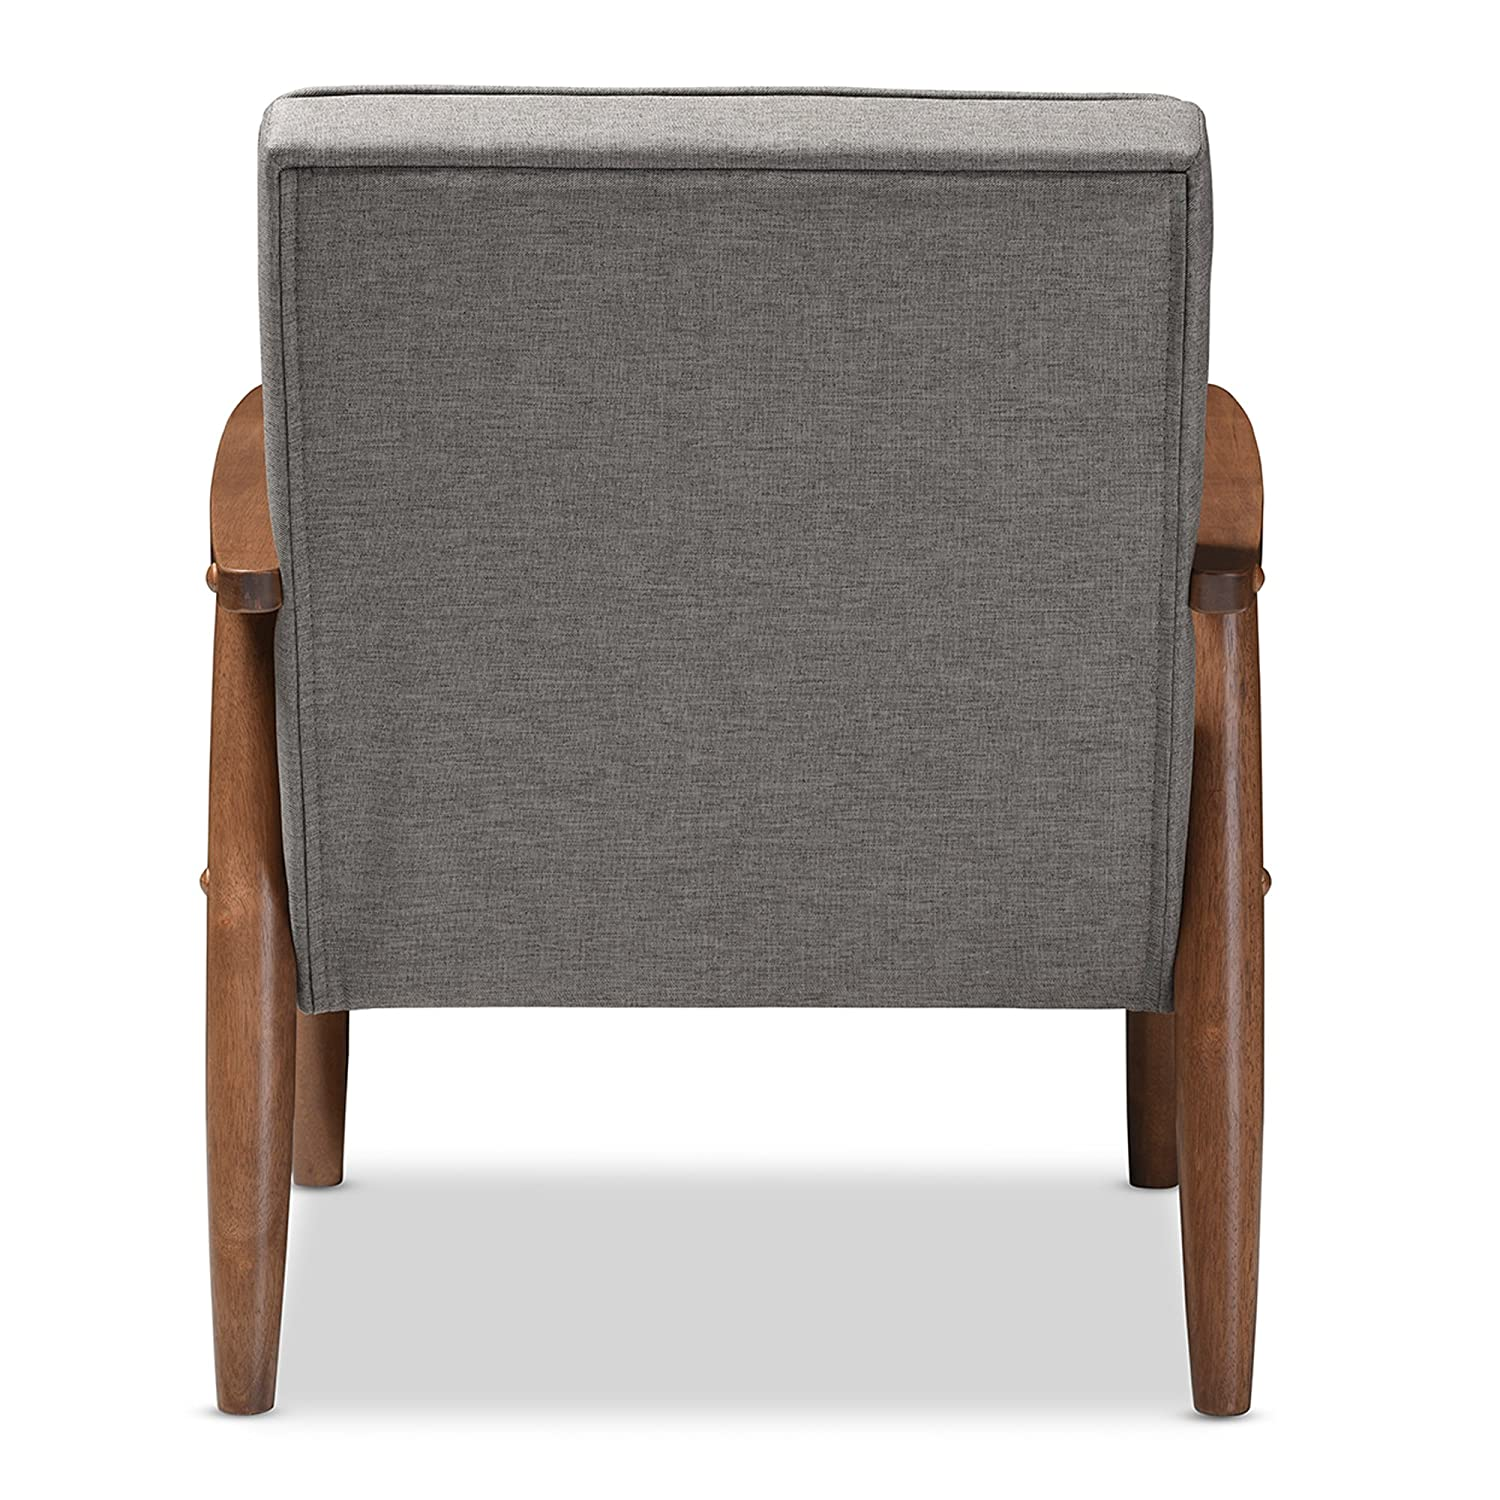 amazoncom baxton studio sorrento midcentury retro modern fabric upholstered wooden lounge chair grey kitchen u0026 dining - Mid Century Lounge Chair